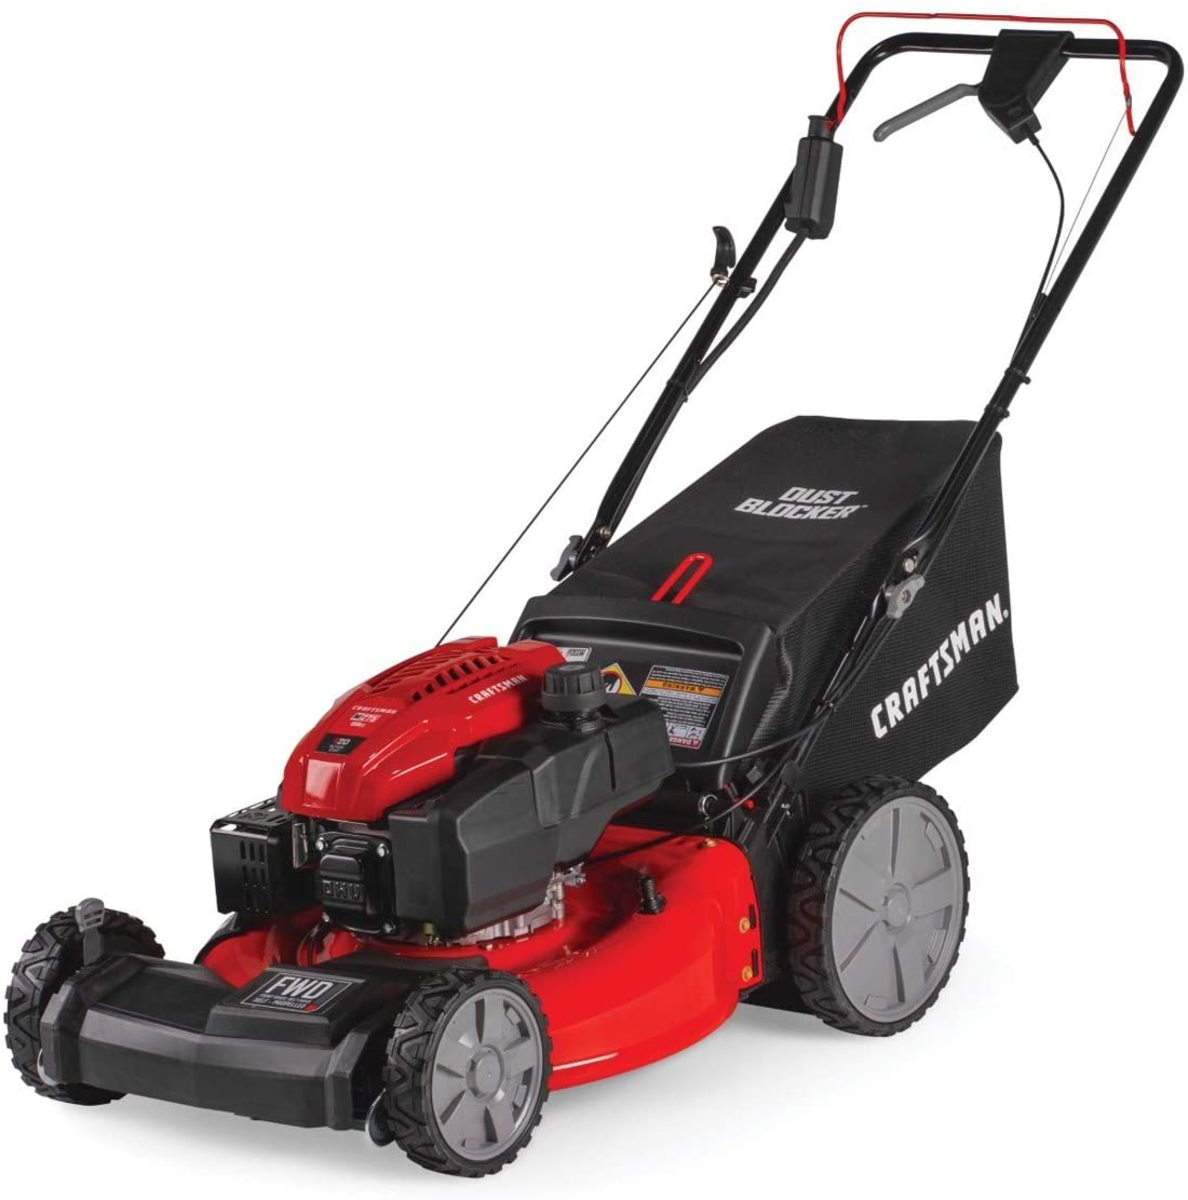 The Craftsman M275 159cc 21-Inch 3-in-1 High-Wheeled Self-Propelled FWD Gas Powered Mower.